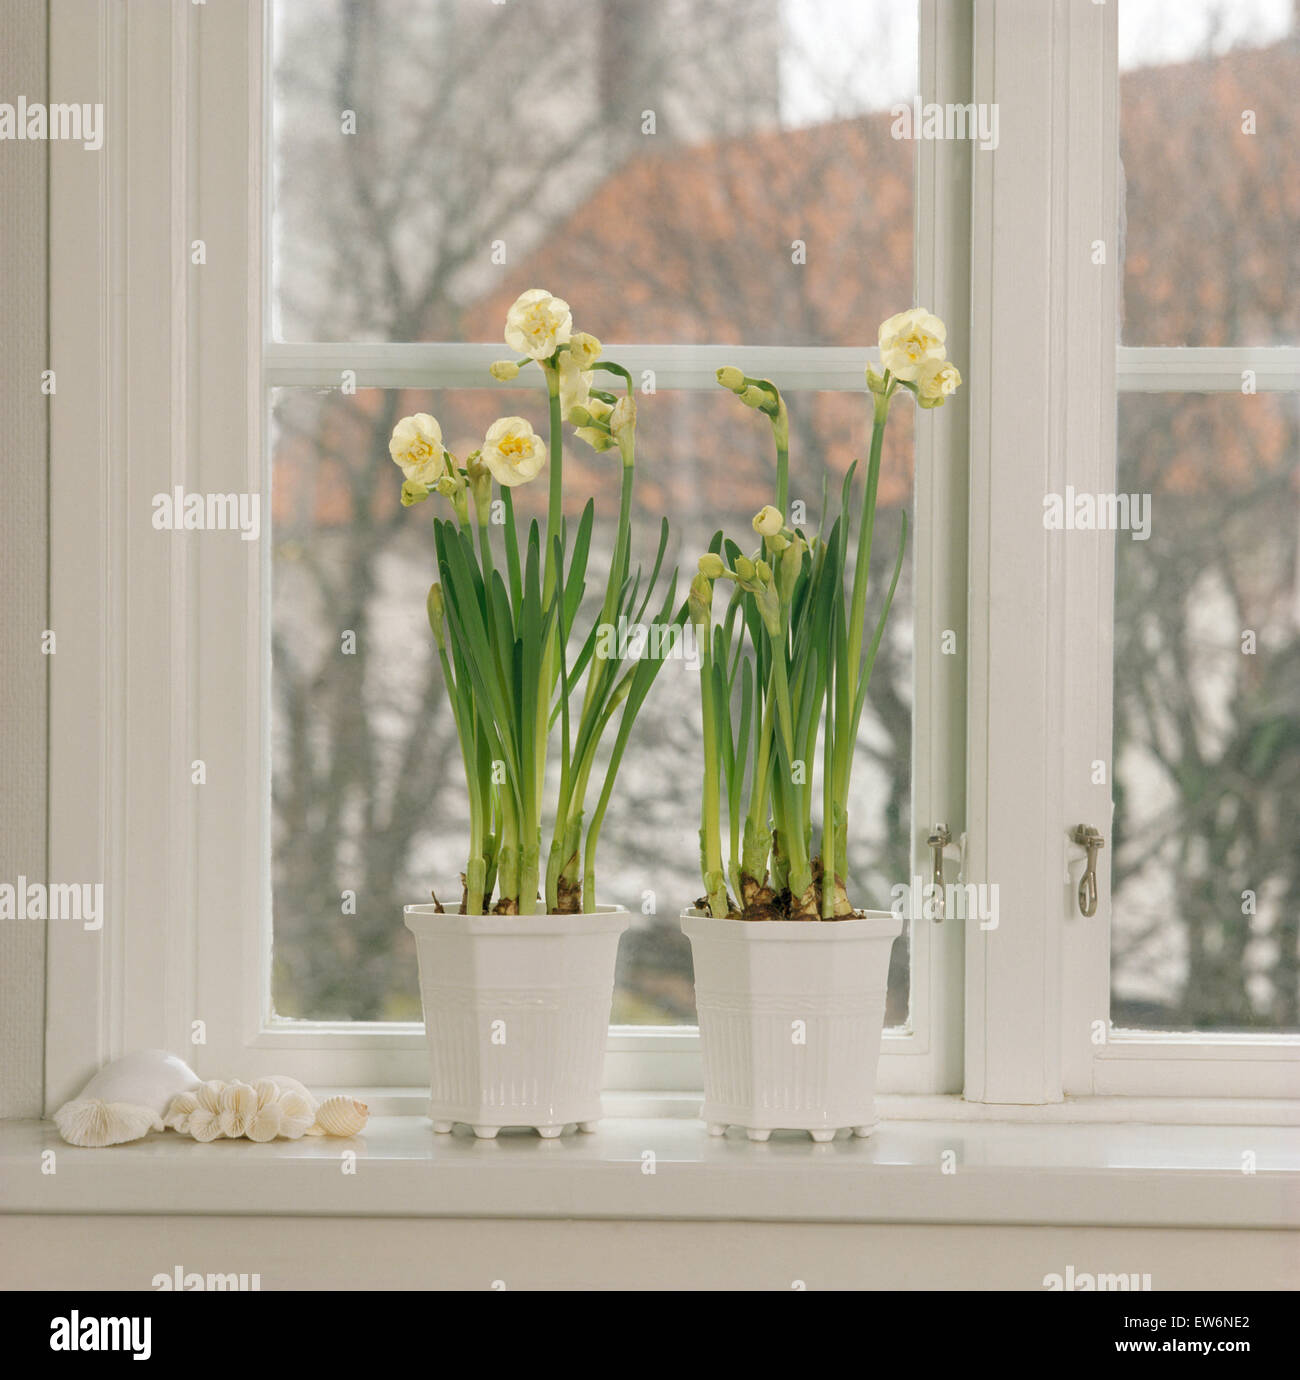 Still-Life of cream 'Cheerfulness' narcissi in white pots on windowsill - Stock Image